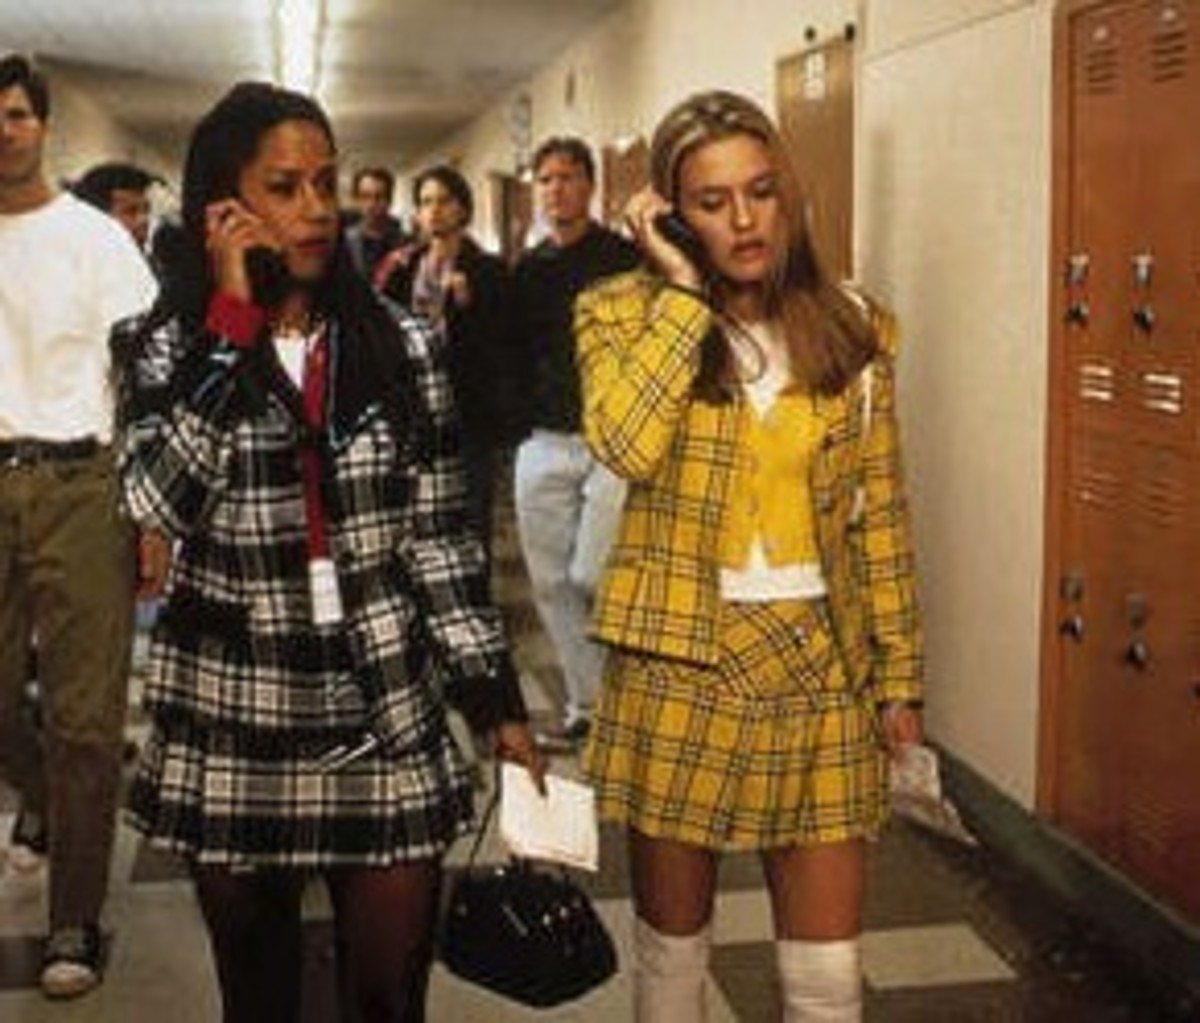 Clueless Outfits Clueless Movie Fashions For The Modern Girl   HubPages